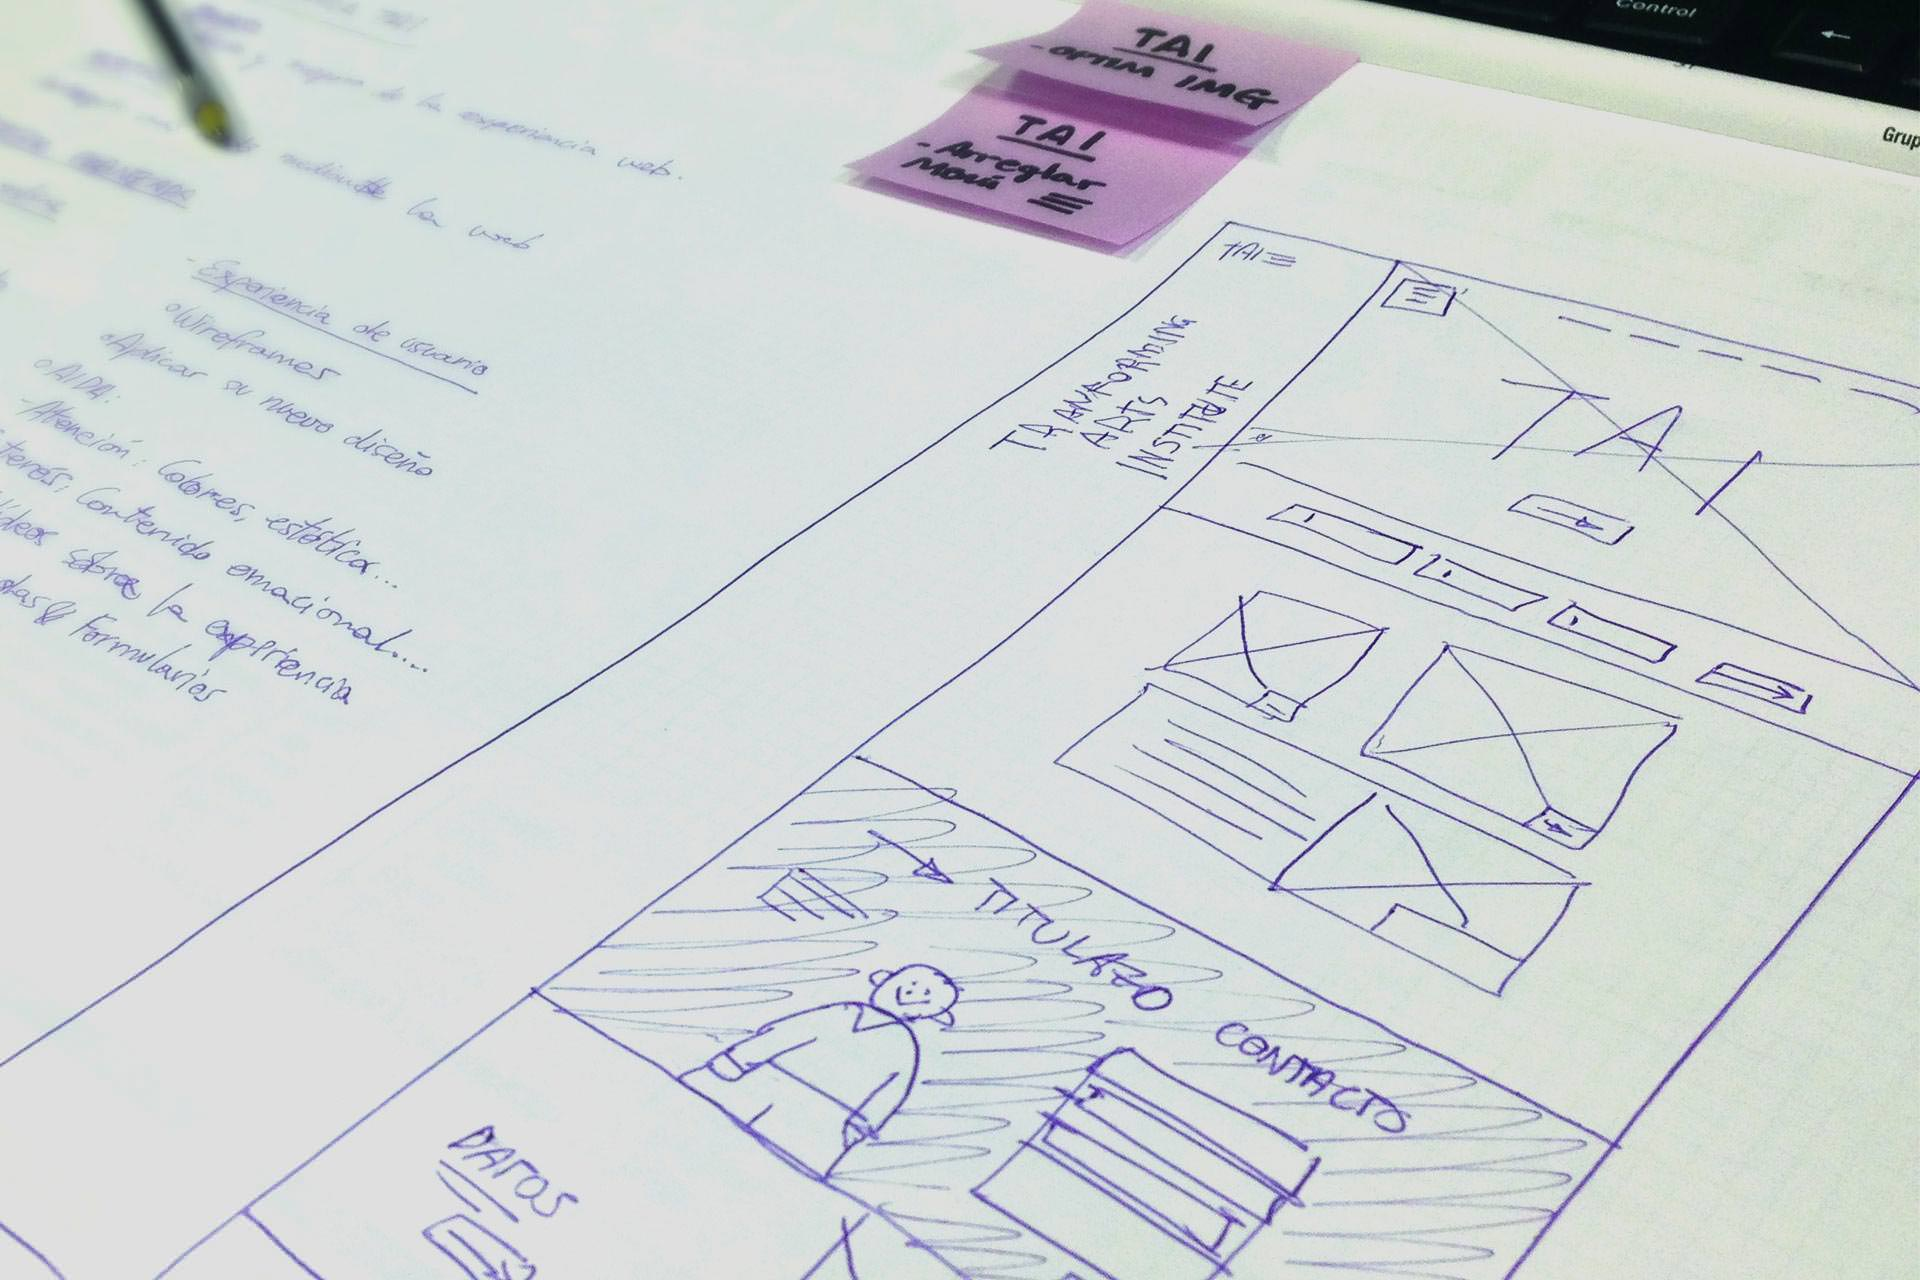 Web redesign wireframes